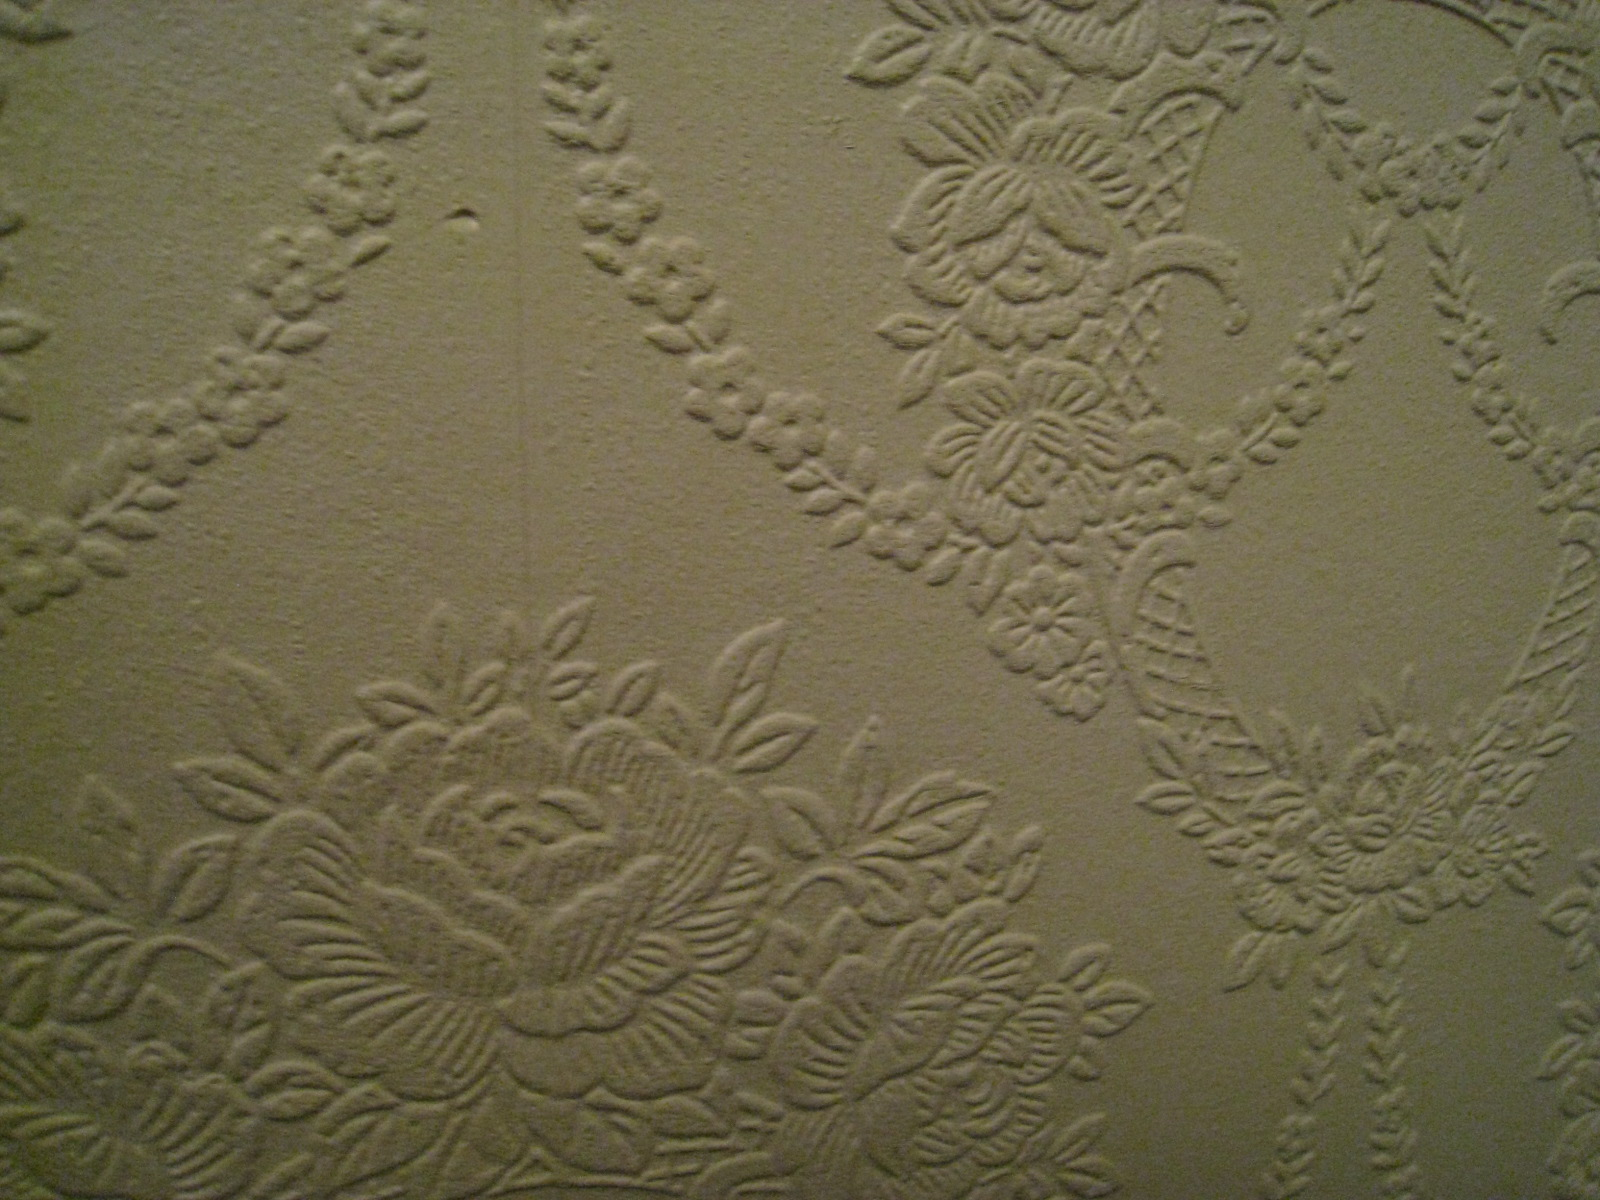 Covering textured wallpaper